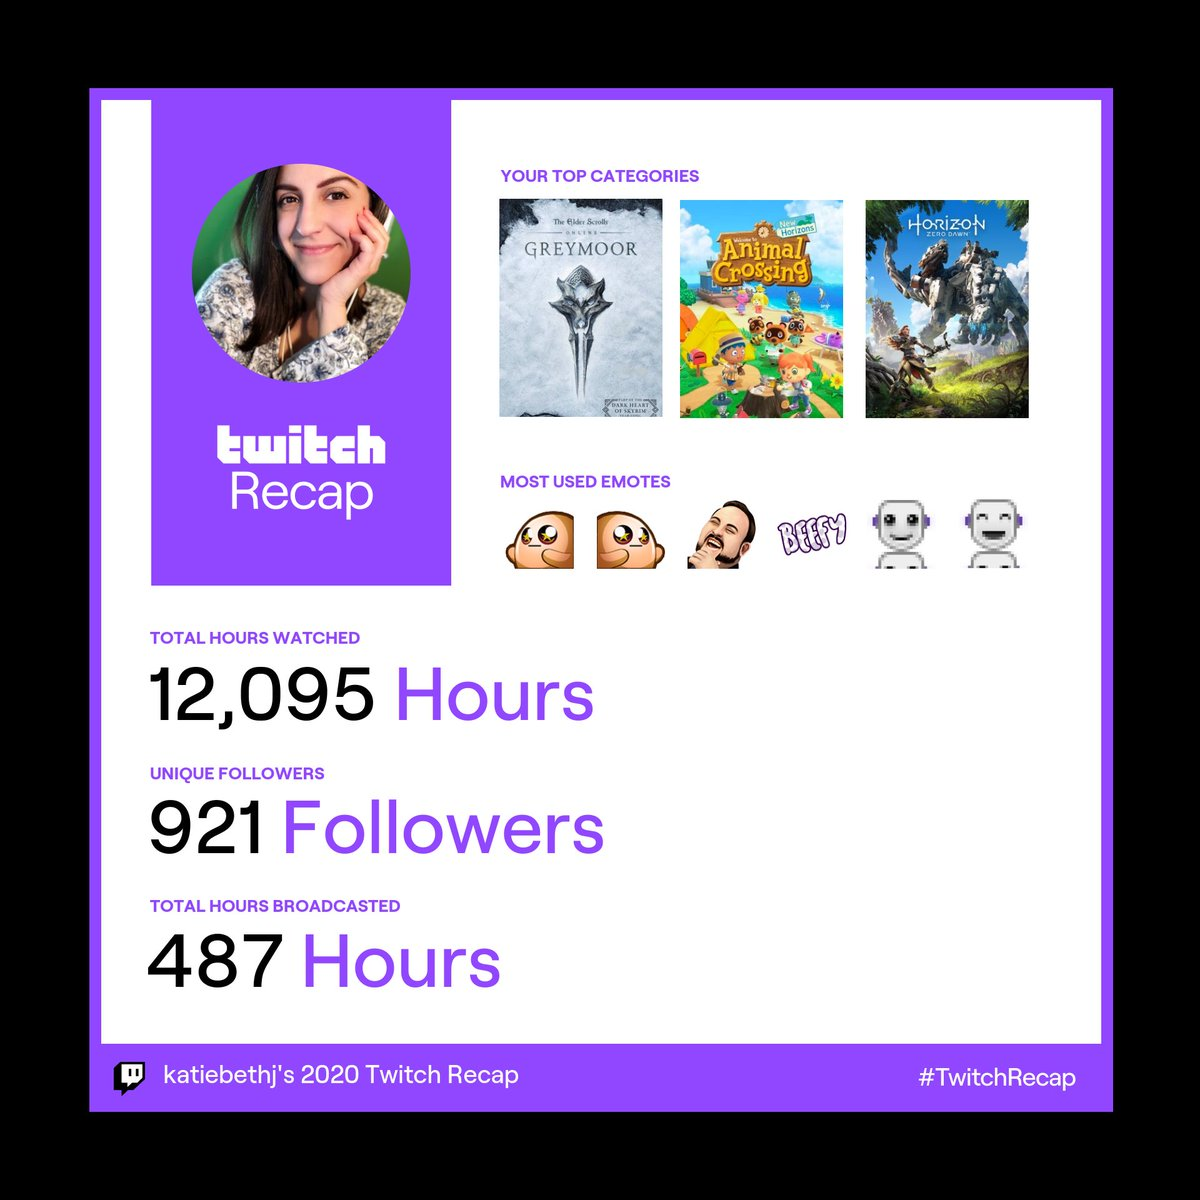 BEEFY CREW 🥺🥺🥺  A lot of hard work last year resulted in nice organic growth. Proud of my community and everything we've done (raising $3k for St Jude and $700 for humane society, don't forget!)  Kicking off 2021 streams starting next week. Here we go! 🔥🔥  #twitchrecap